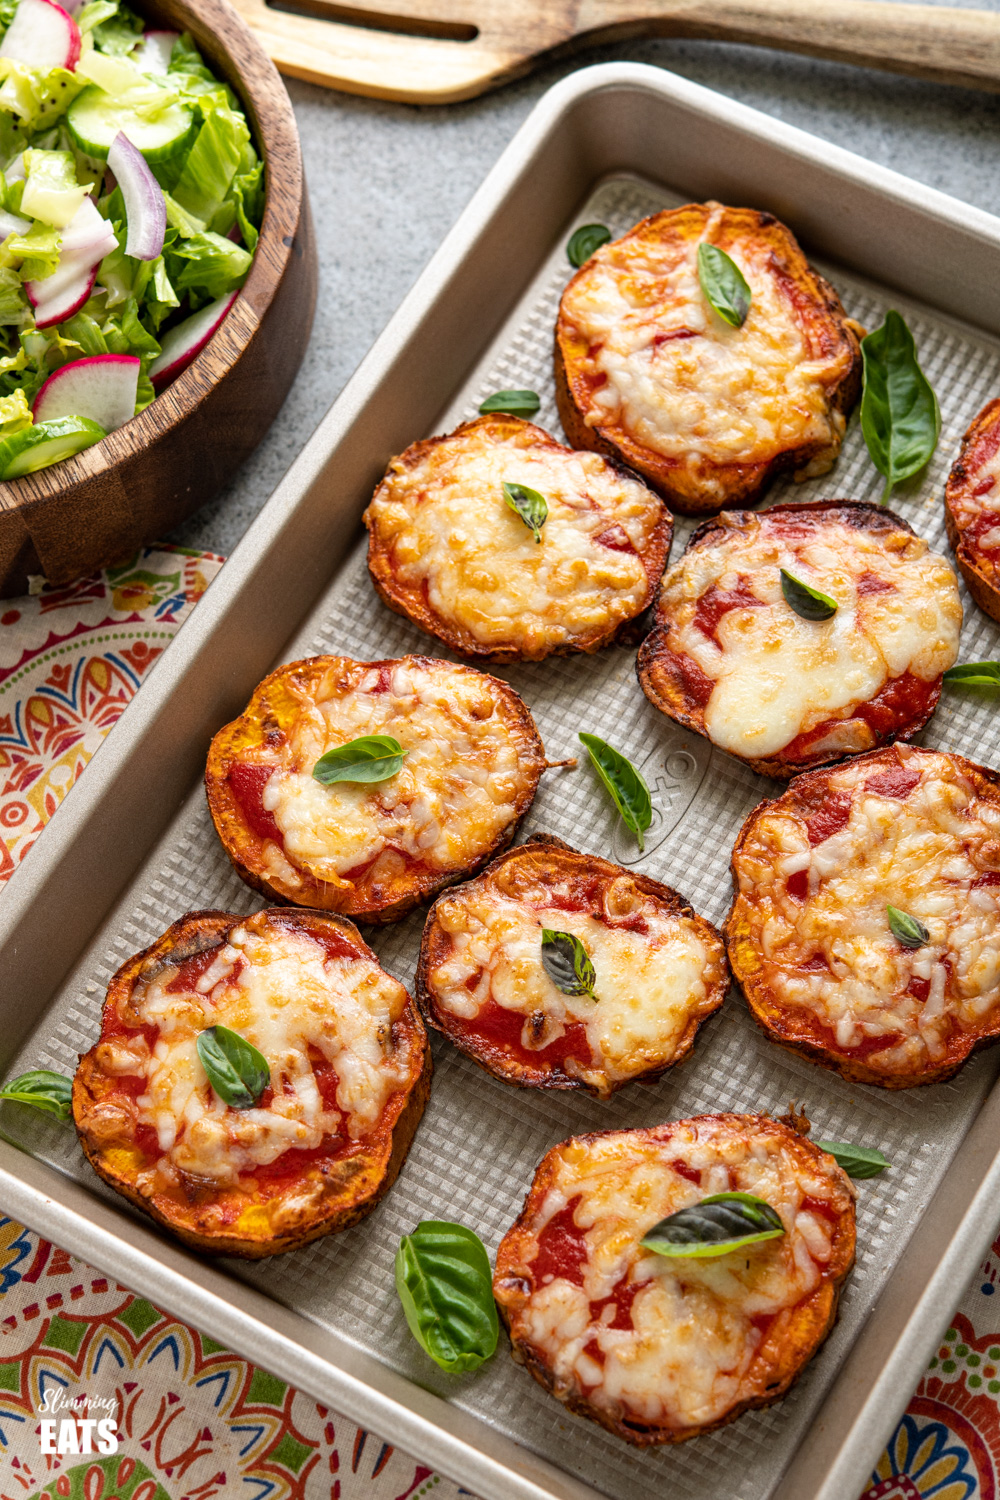 air fryer pizza sweet potato slices on a baking tray with scattered fresh basil and bowl of salad to the left